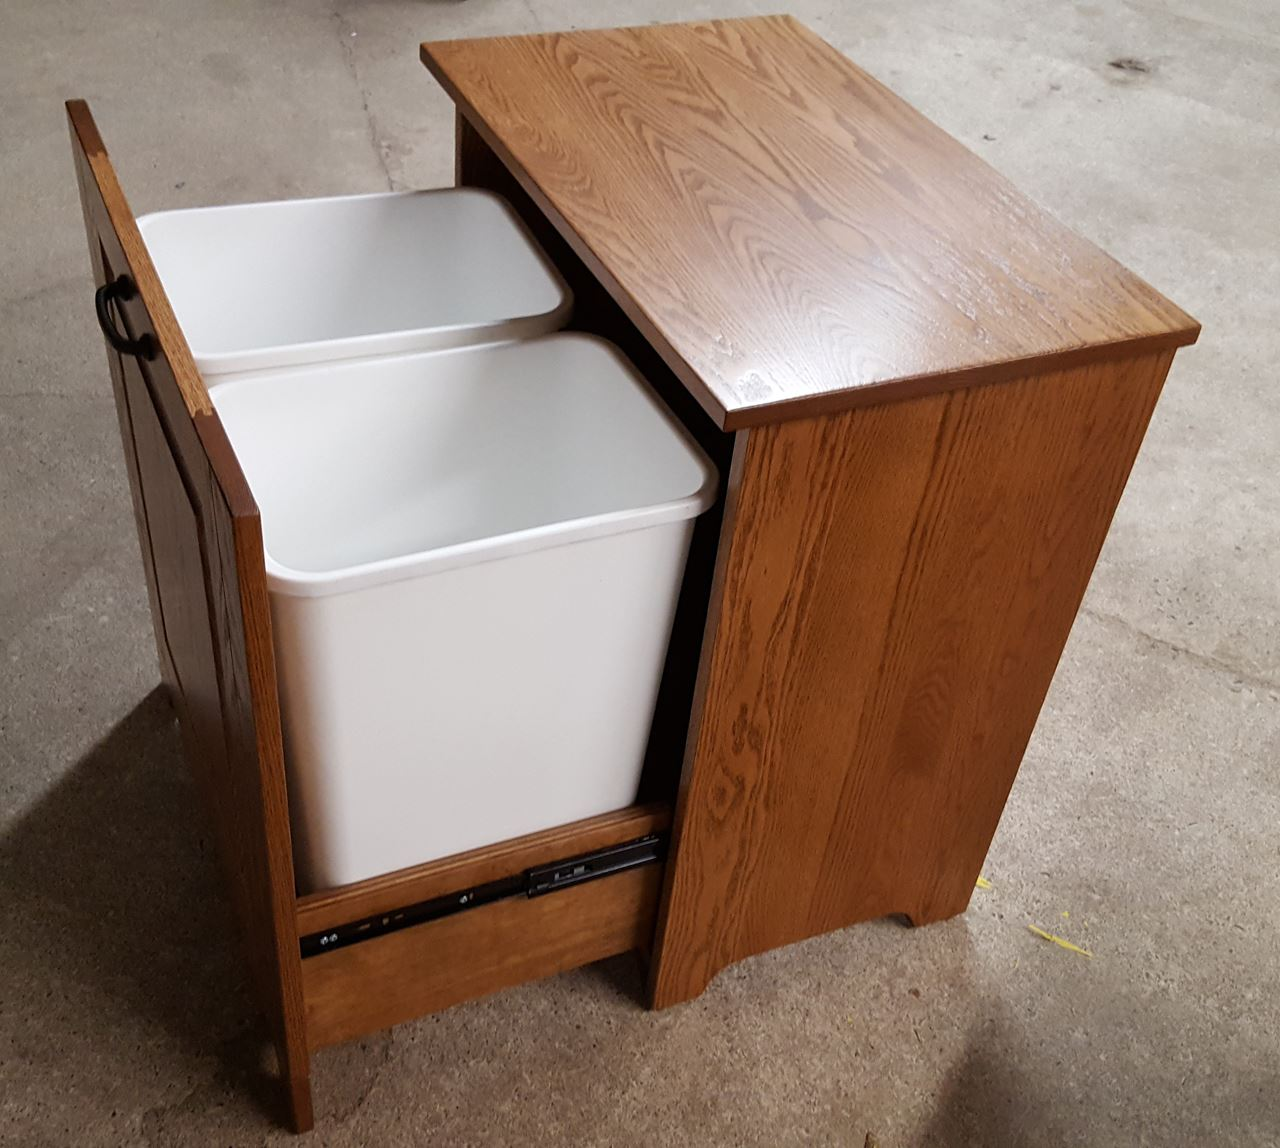 Four seasons furnishings amish made furniture amish made tilt out trash bin 2 cans - Amish tilt out trash bin ...